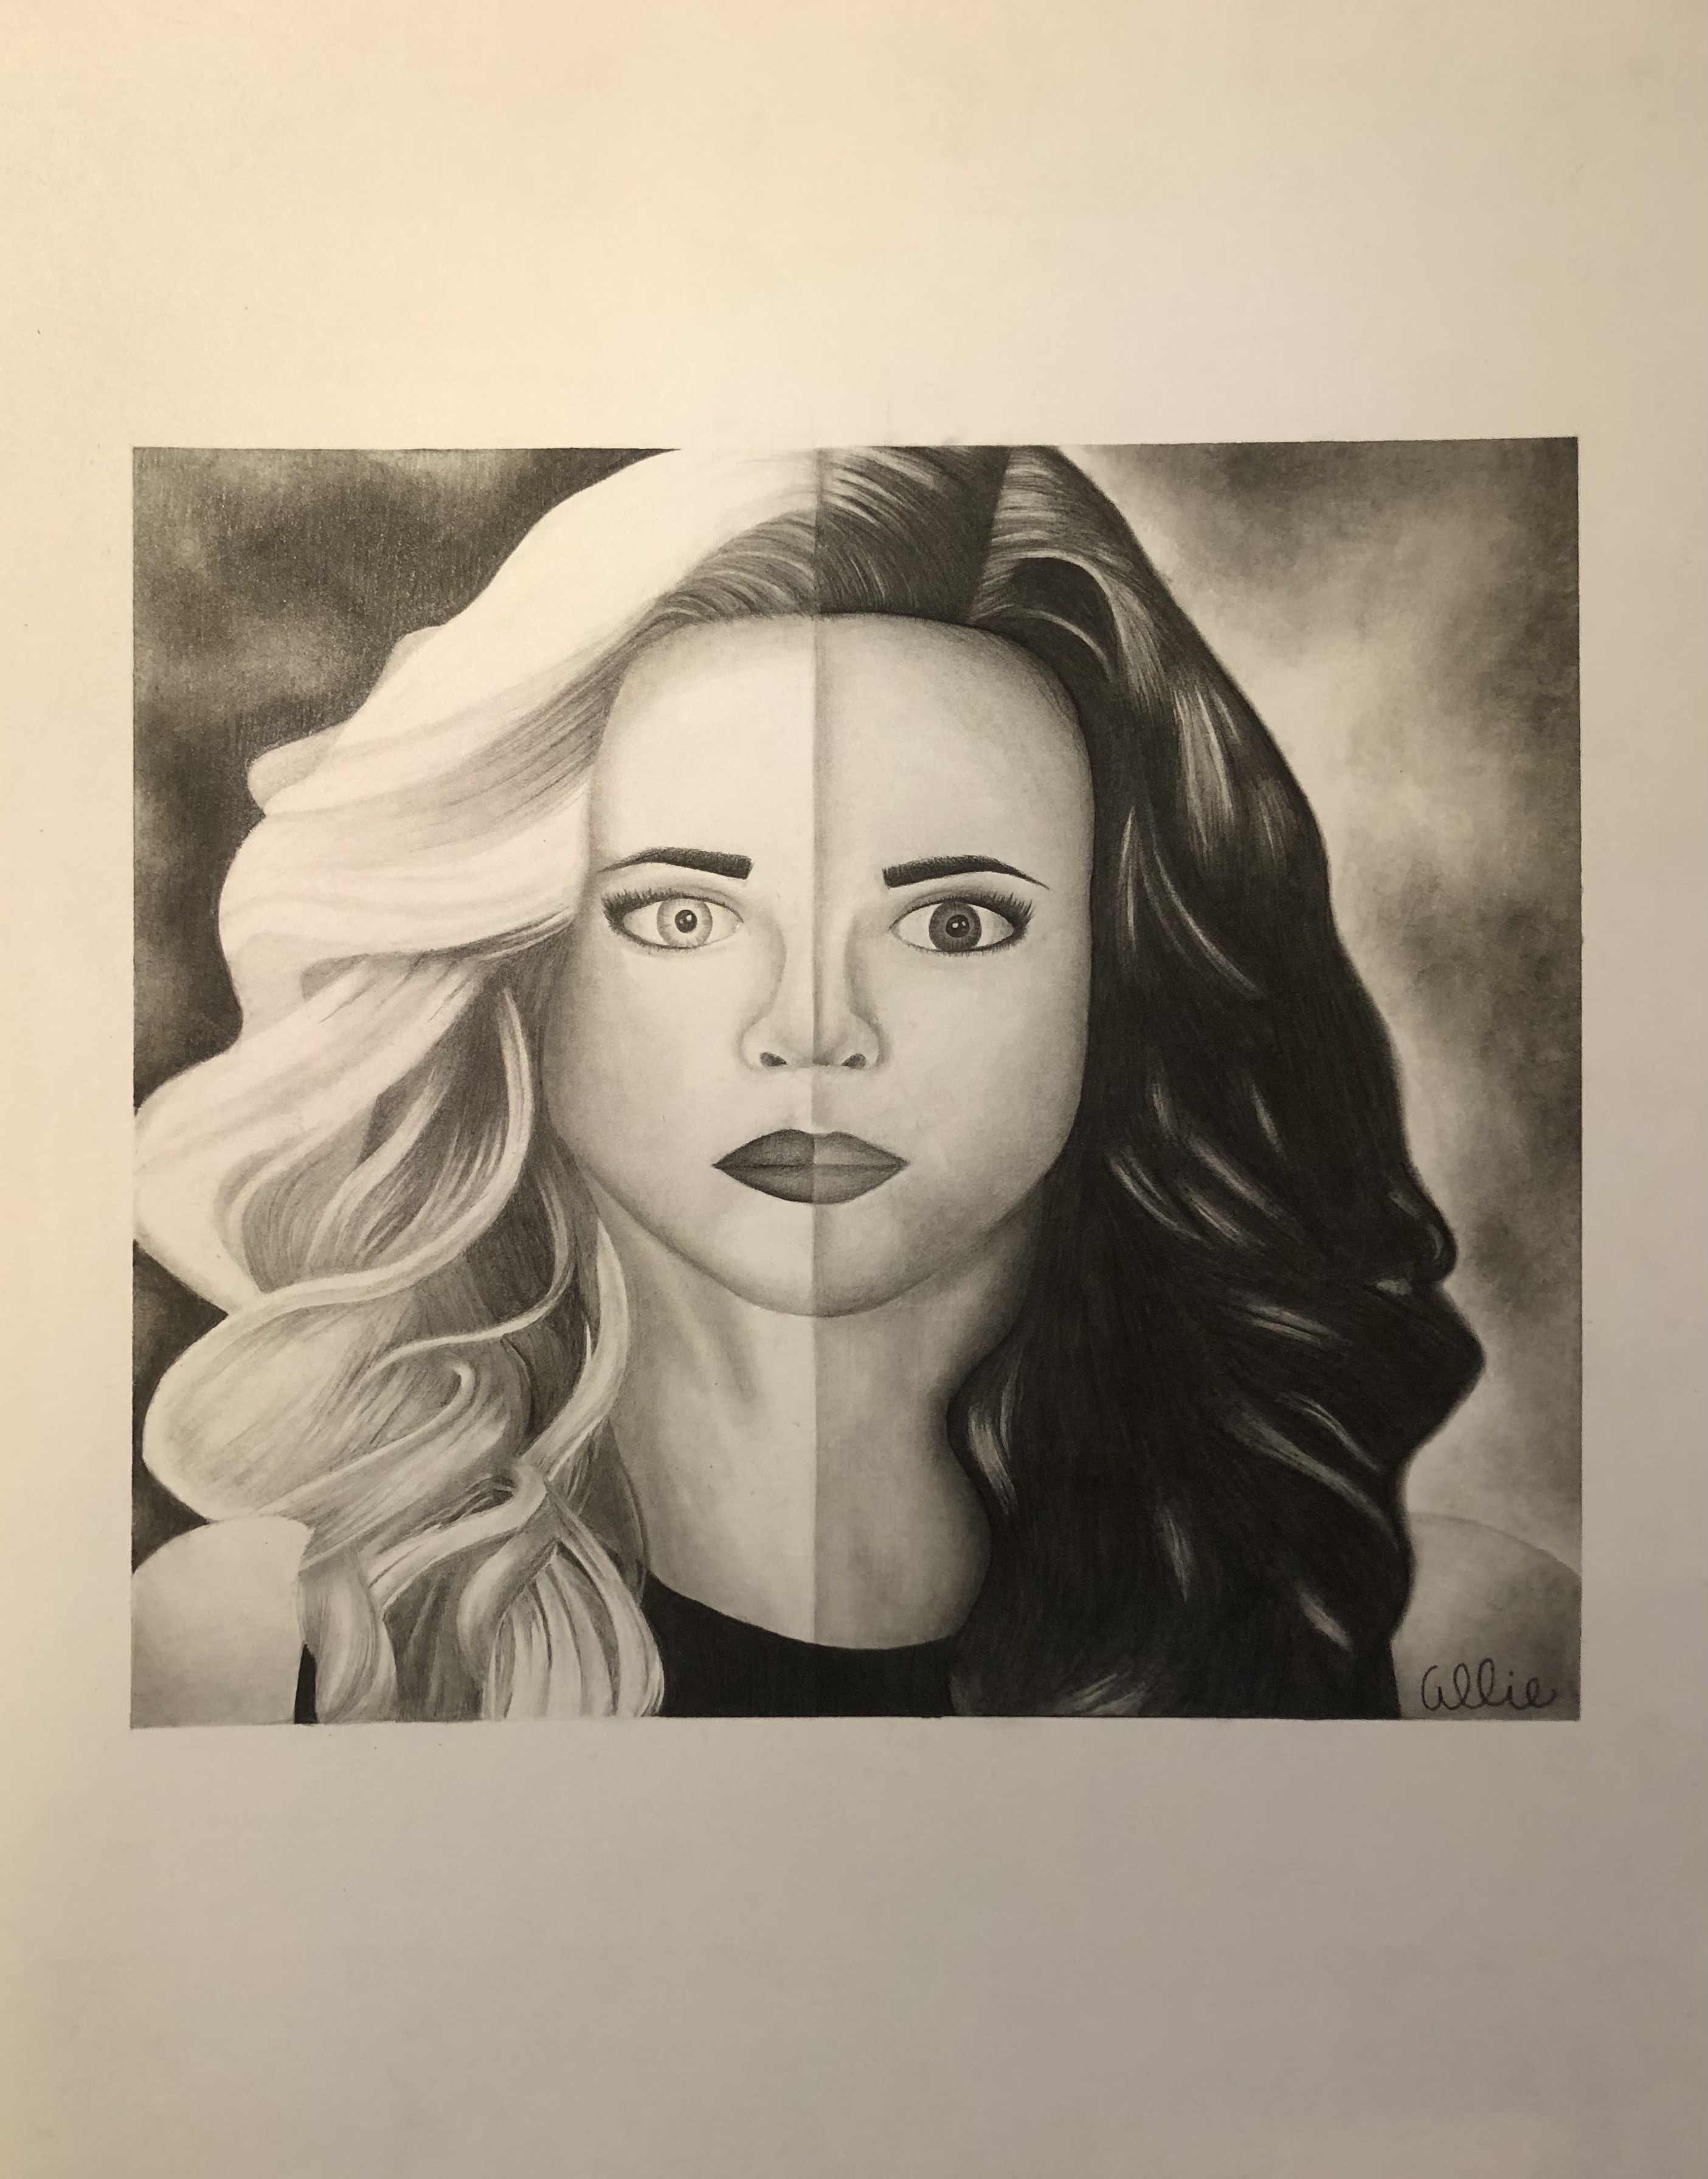 Portrait: Killer Frost and Caitlin Snow